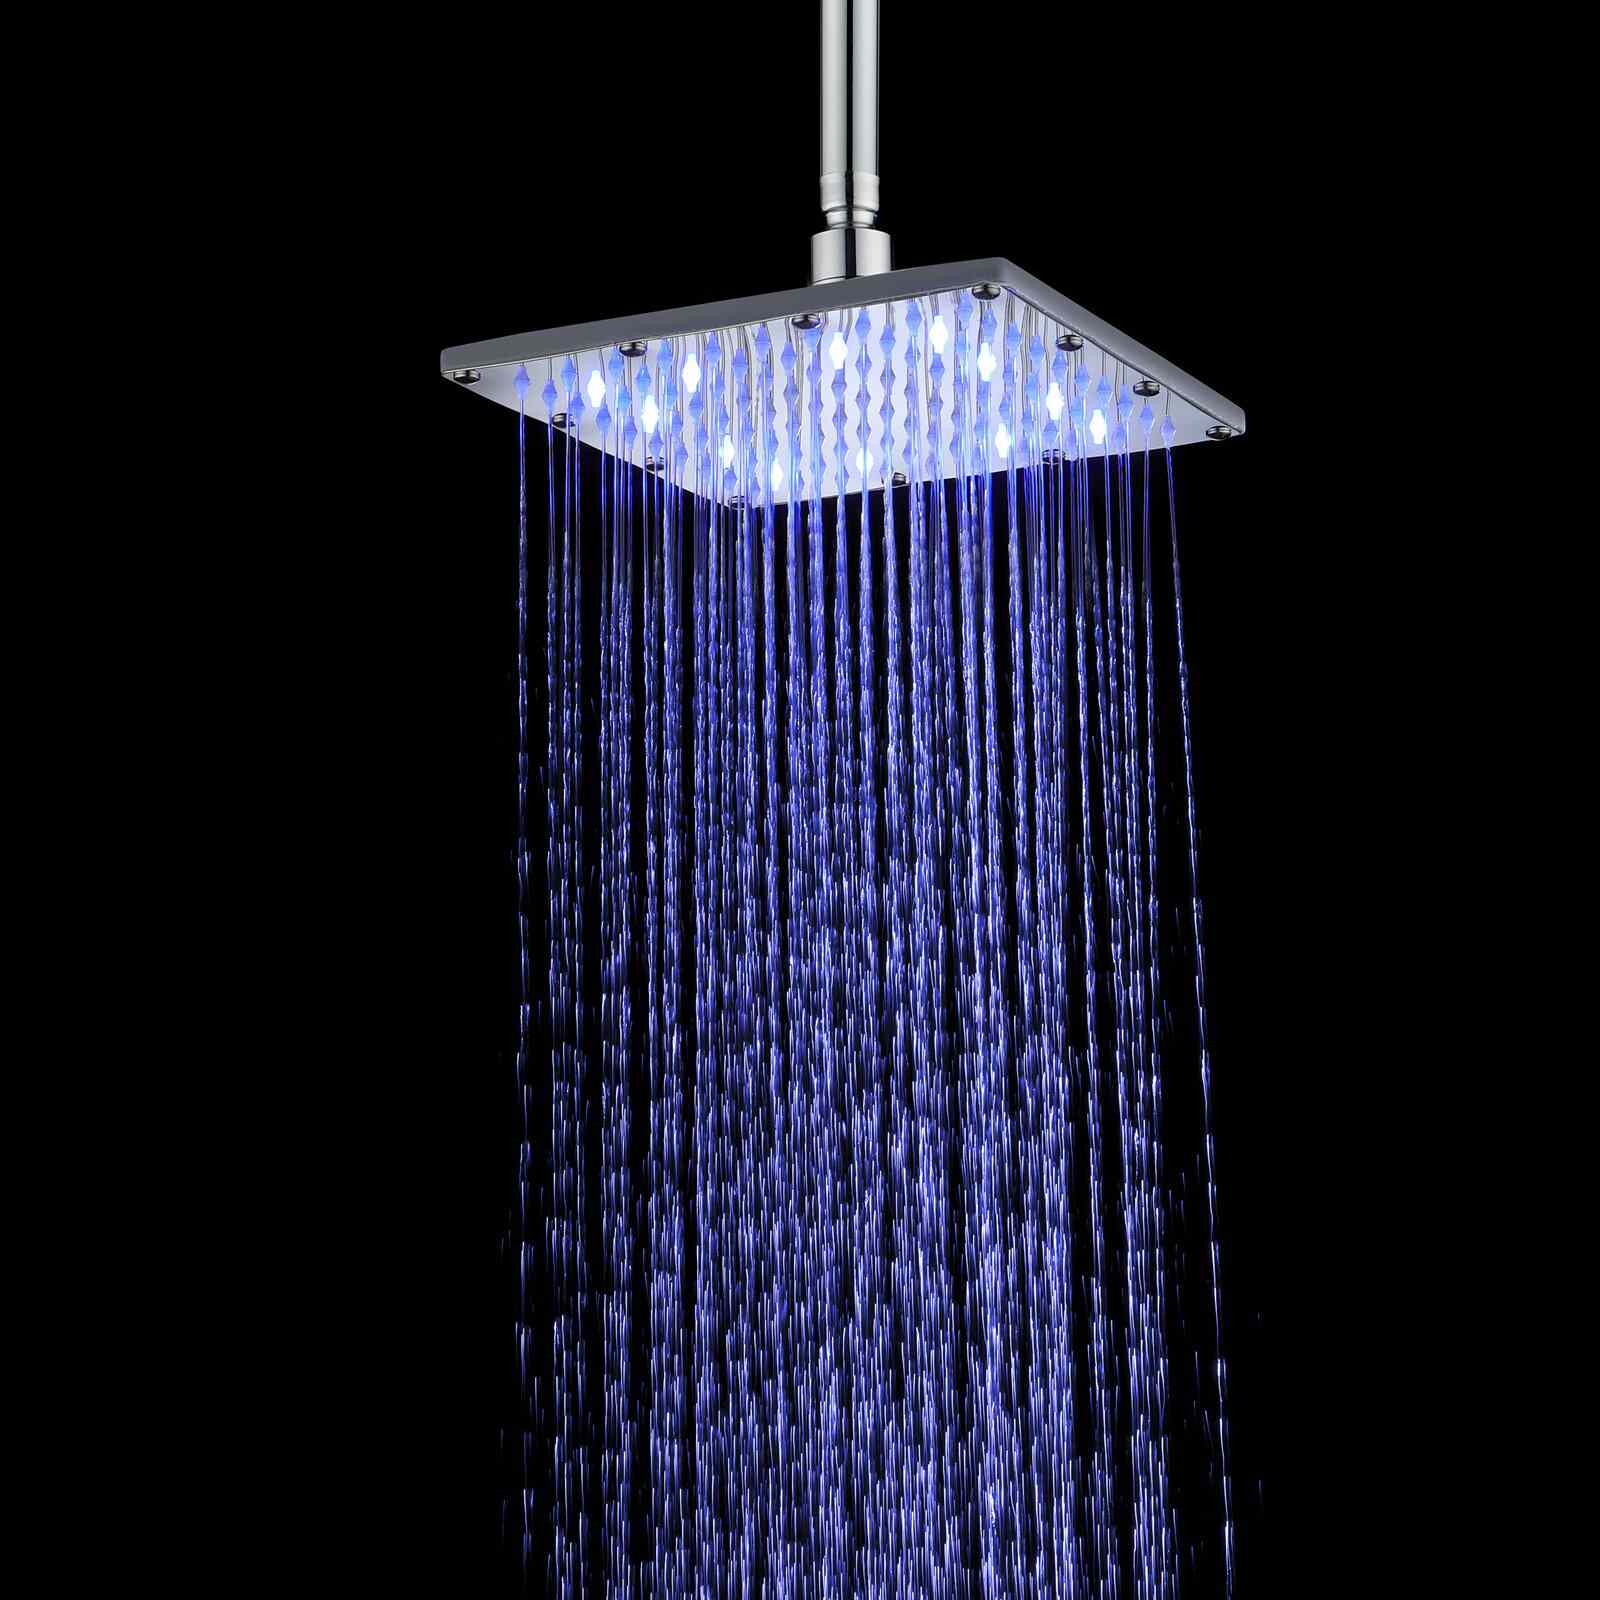 Supersonic Heuer Rain Fixed Shower Head with Temperature-Based LED Lights